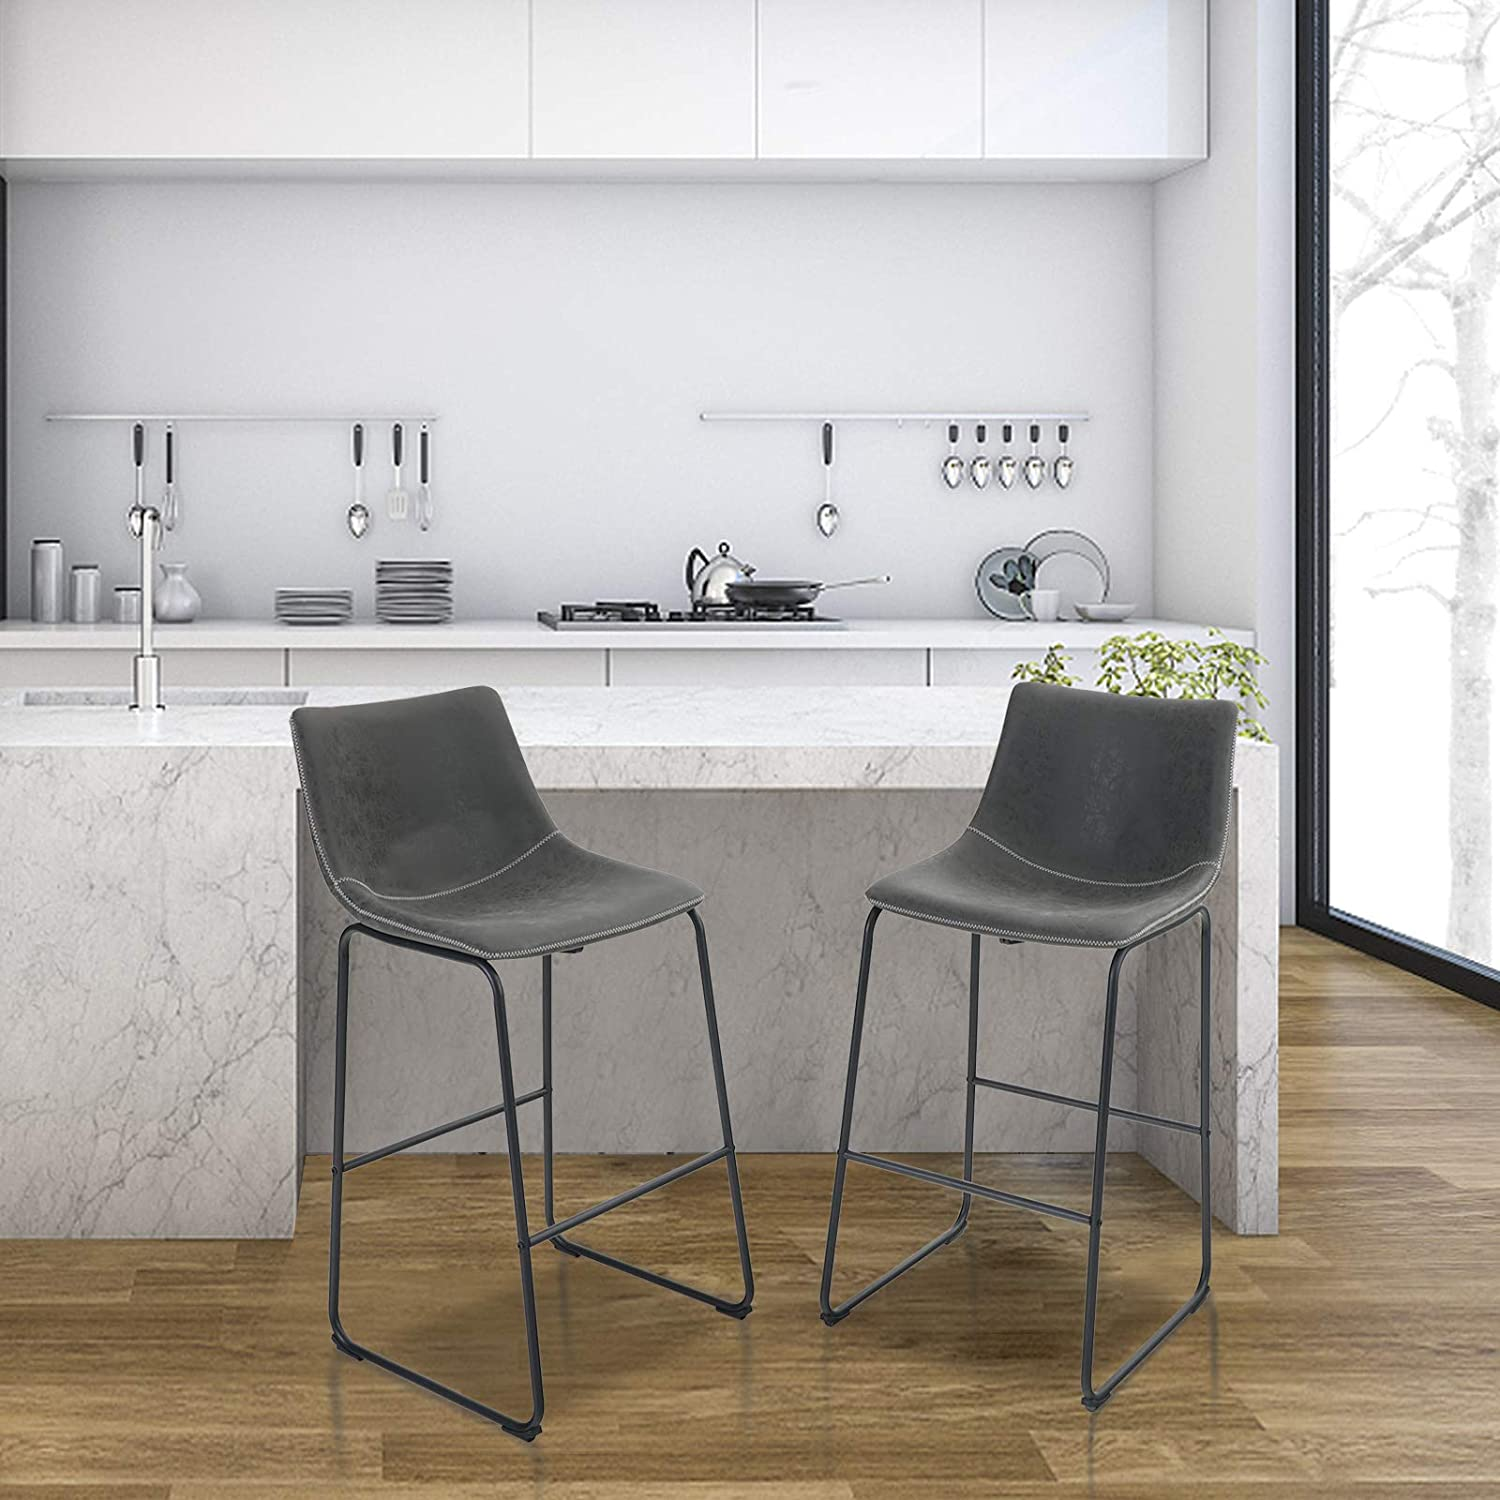 PHI VILLA Bar Stools Set of 2,30 Inches Nubuck Leather Counter Height Bar Stools with Back for Kitchen,Dining Room and Living Room,Modern Designed Bar Chair Furniture Decorate Every Room,Grey